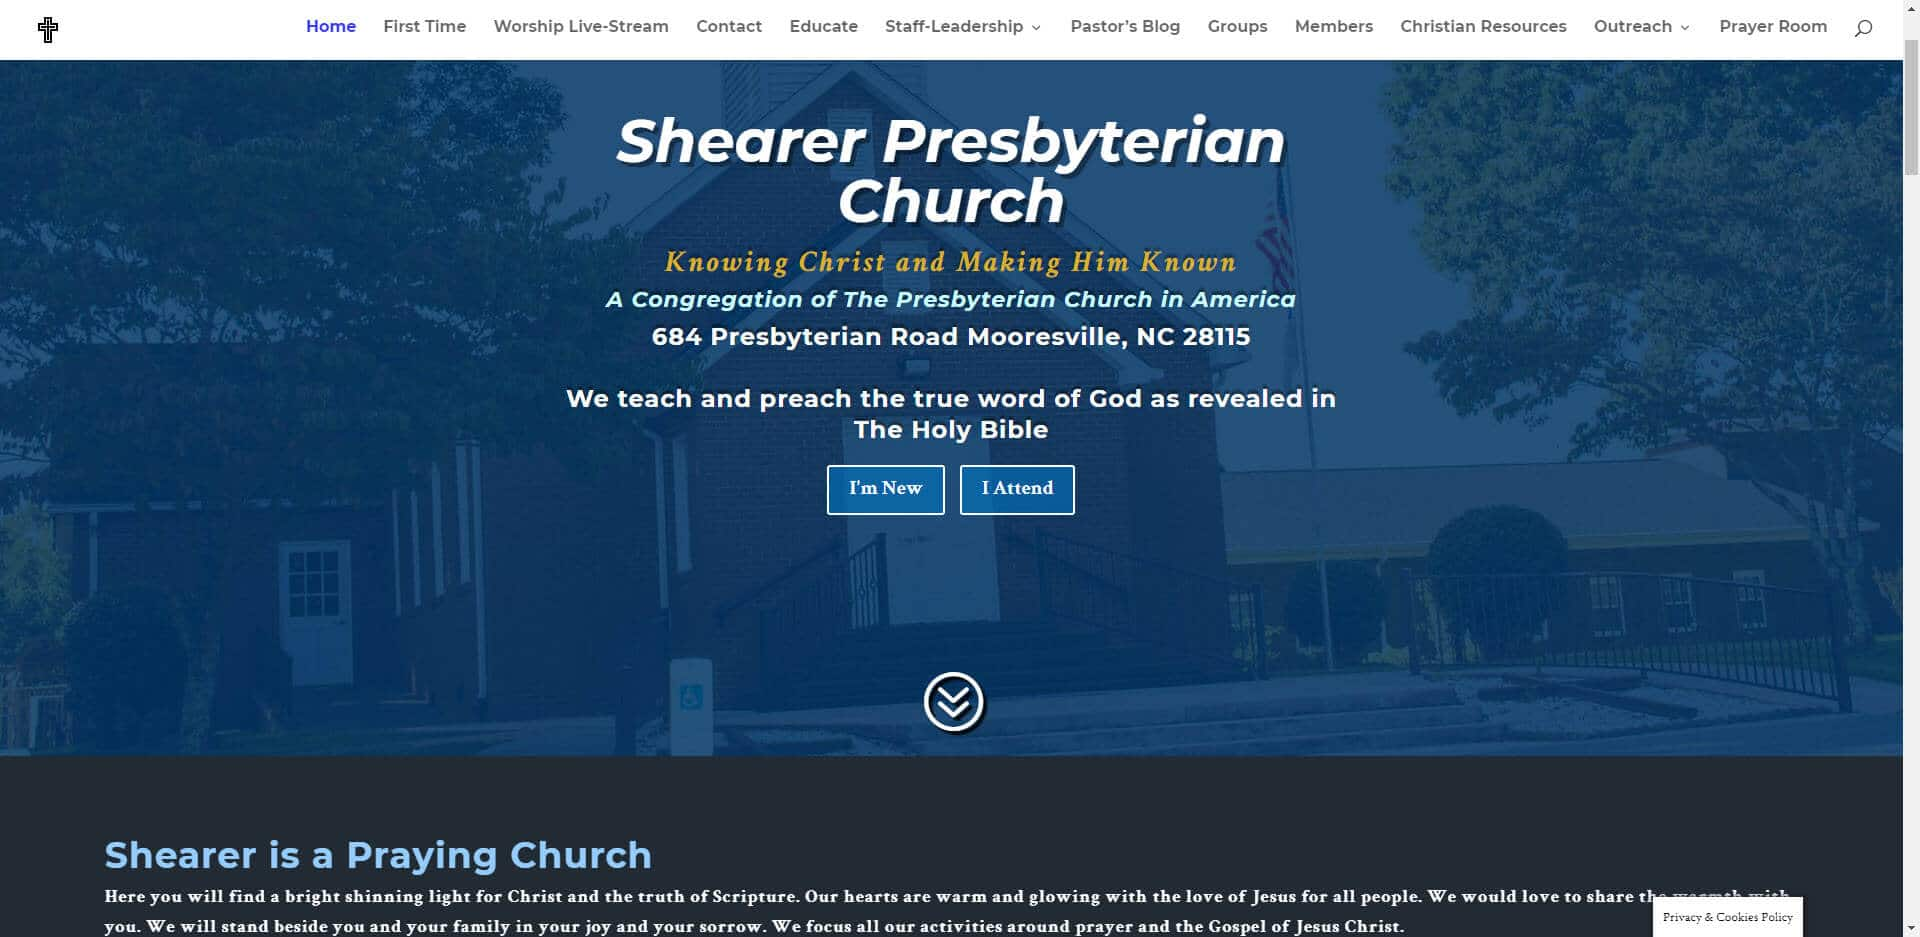 Shearer Presbyterian Church